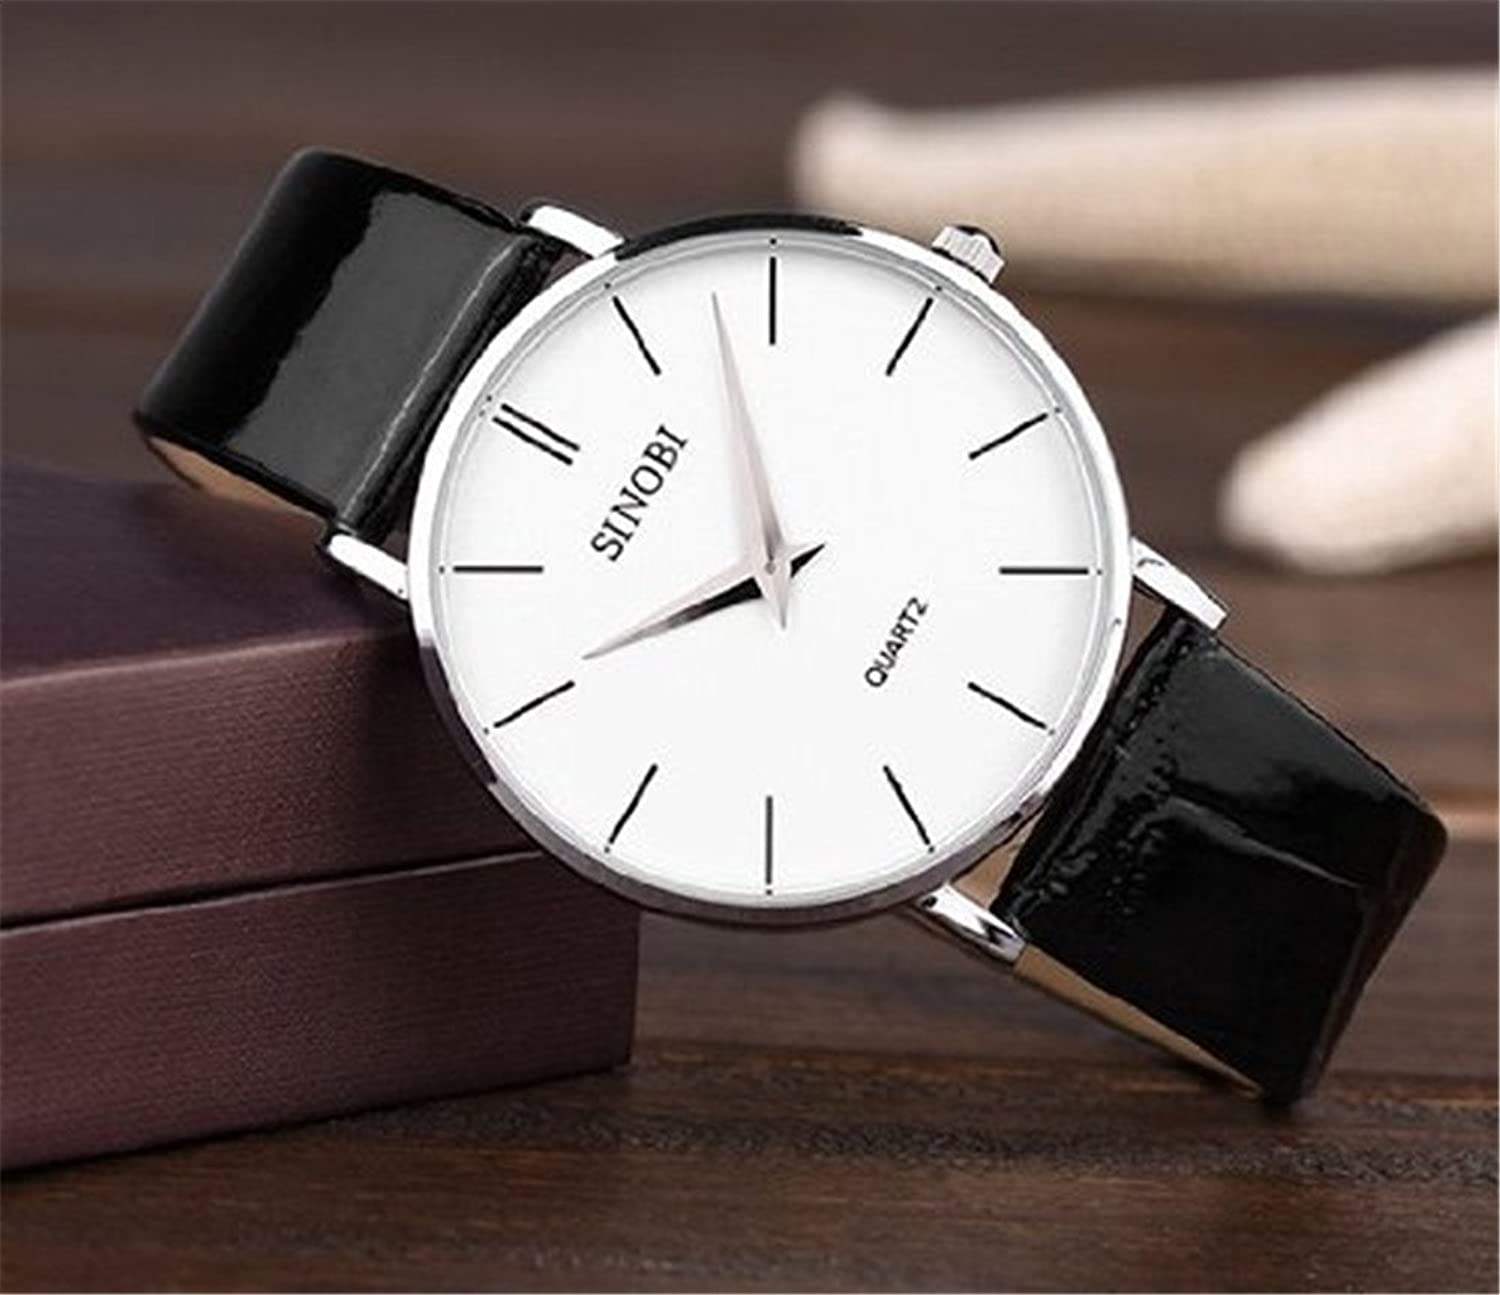 large colors slim alloy dial watches men best product sellers belt quartz women leather and watch multiple leisure wrist fashion